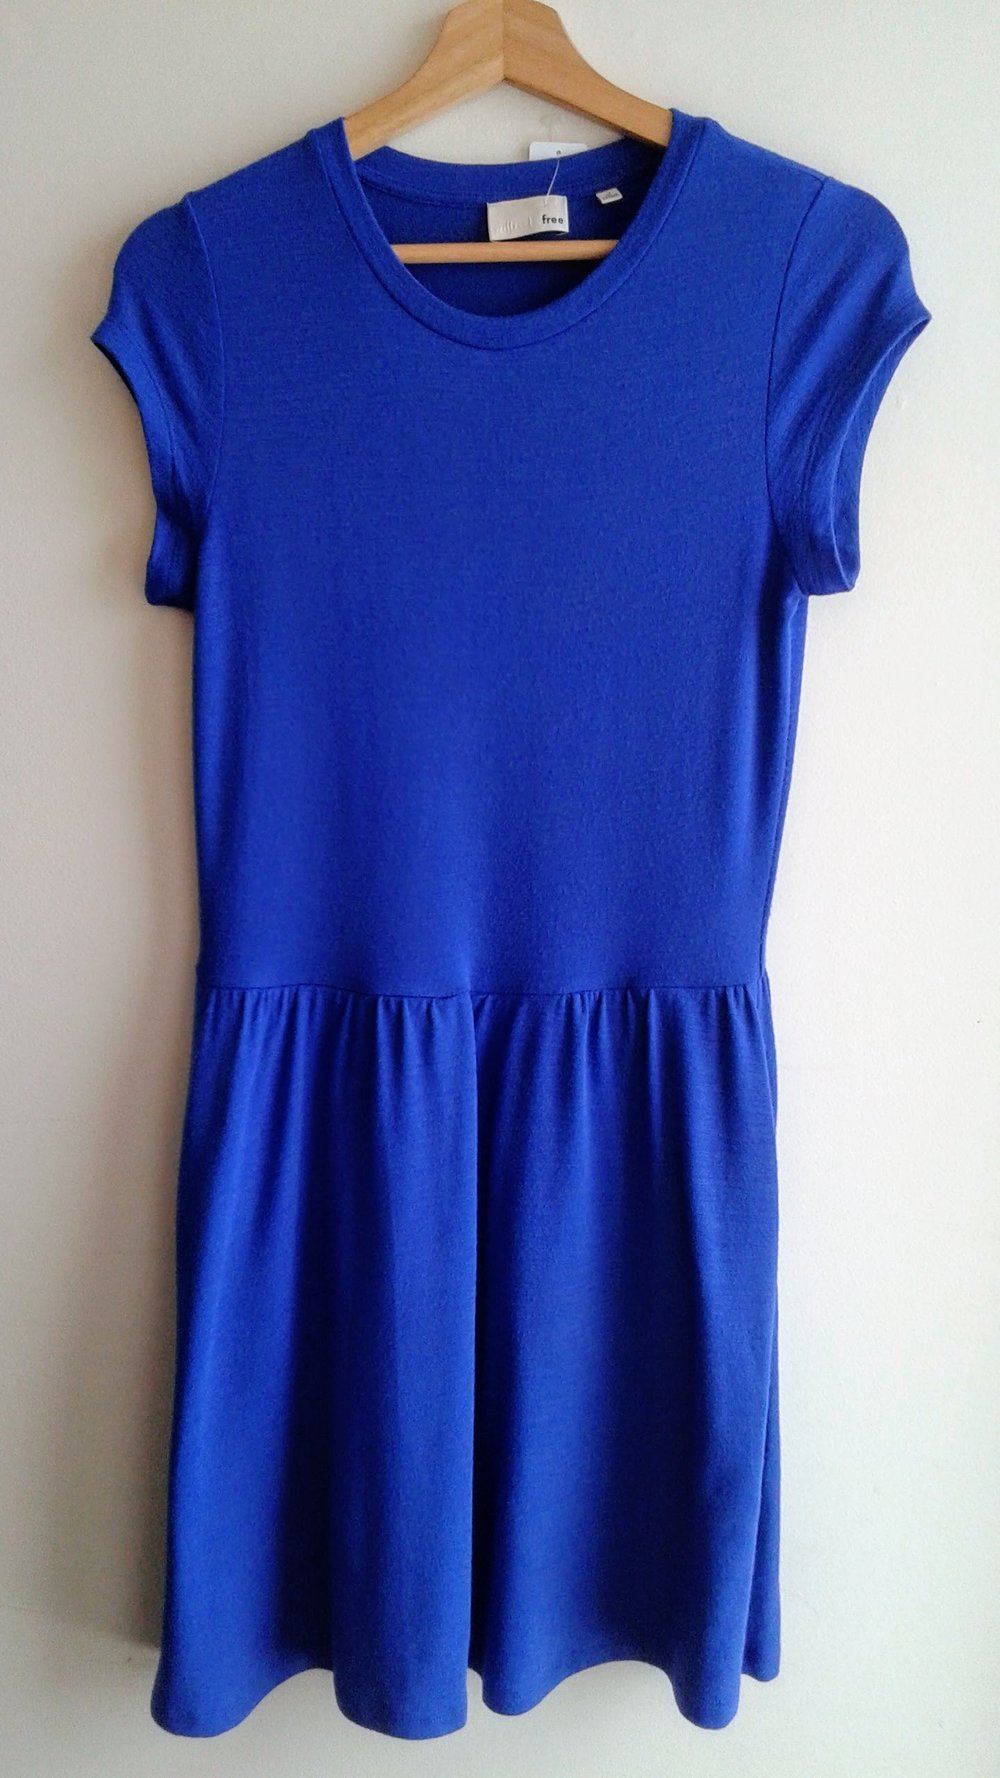 Wilfred Fee dress; Size M, $34